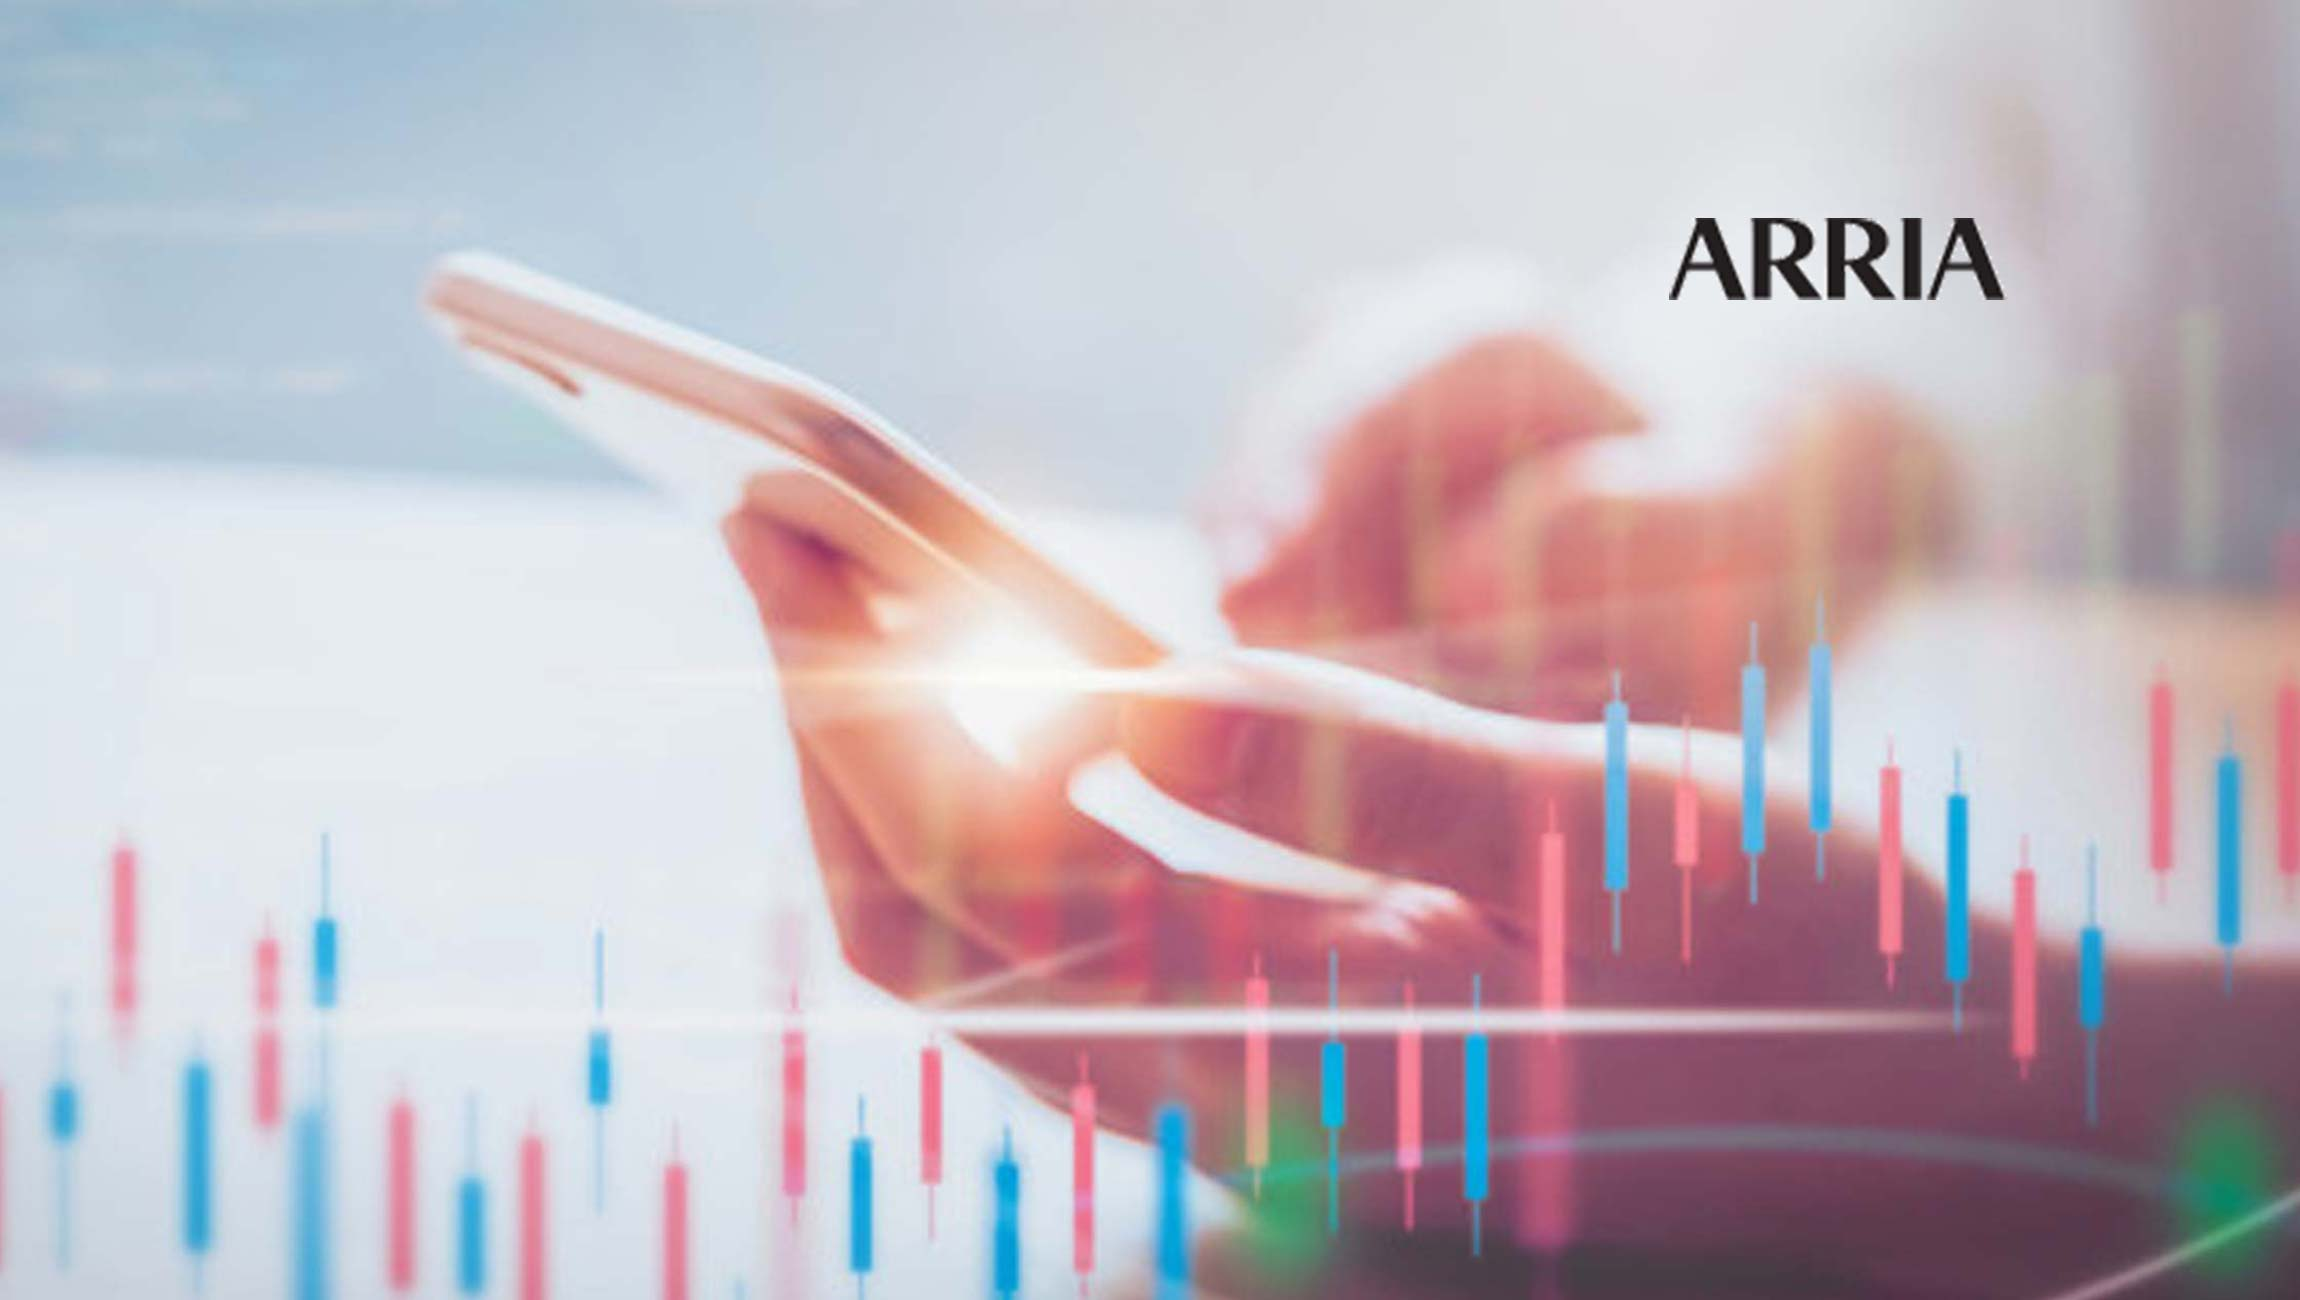 All-new release of Arria NLG for Tableau 3.0  Includes Natural Language Generation Wizard-like Apps and NLQ platform called Arria Answers